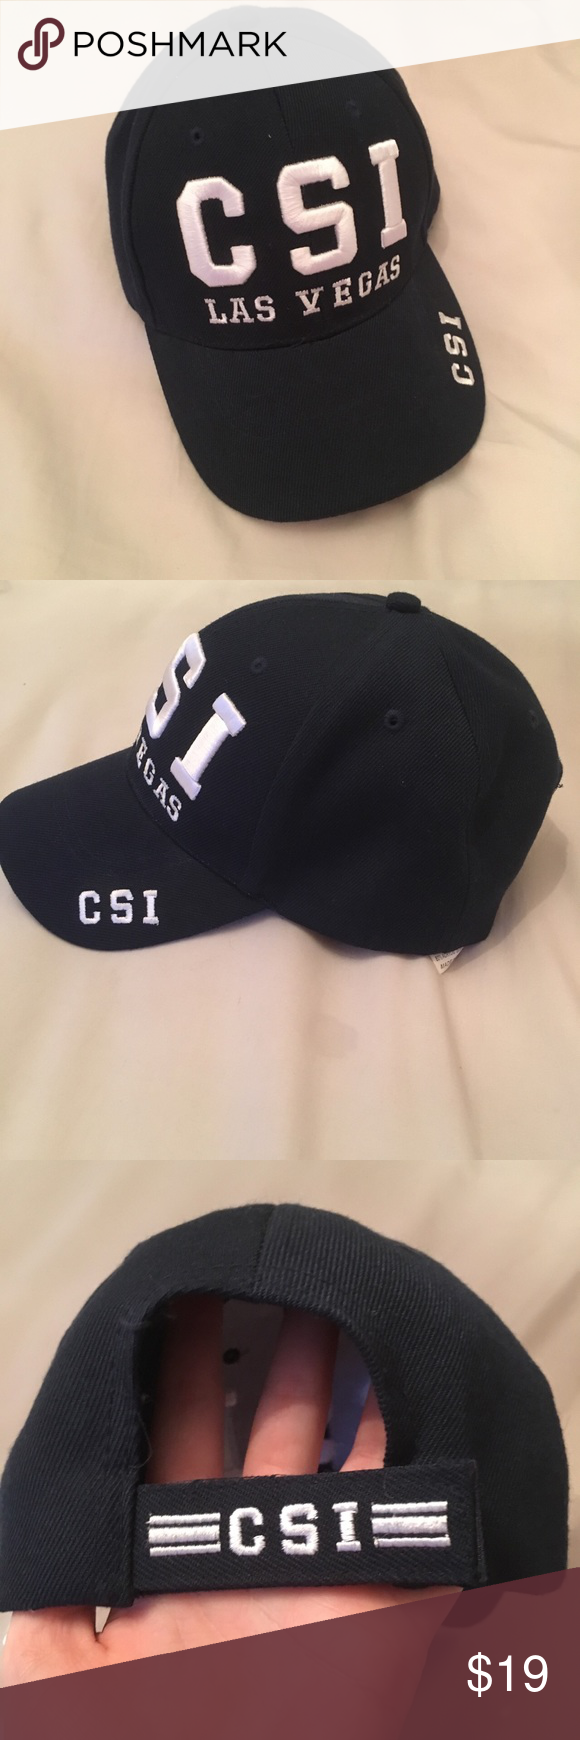 07c9efa6ece42 CSI Dad Hat CSI Las Vegas dad hat. this is so sick! very good